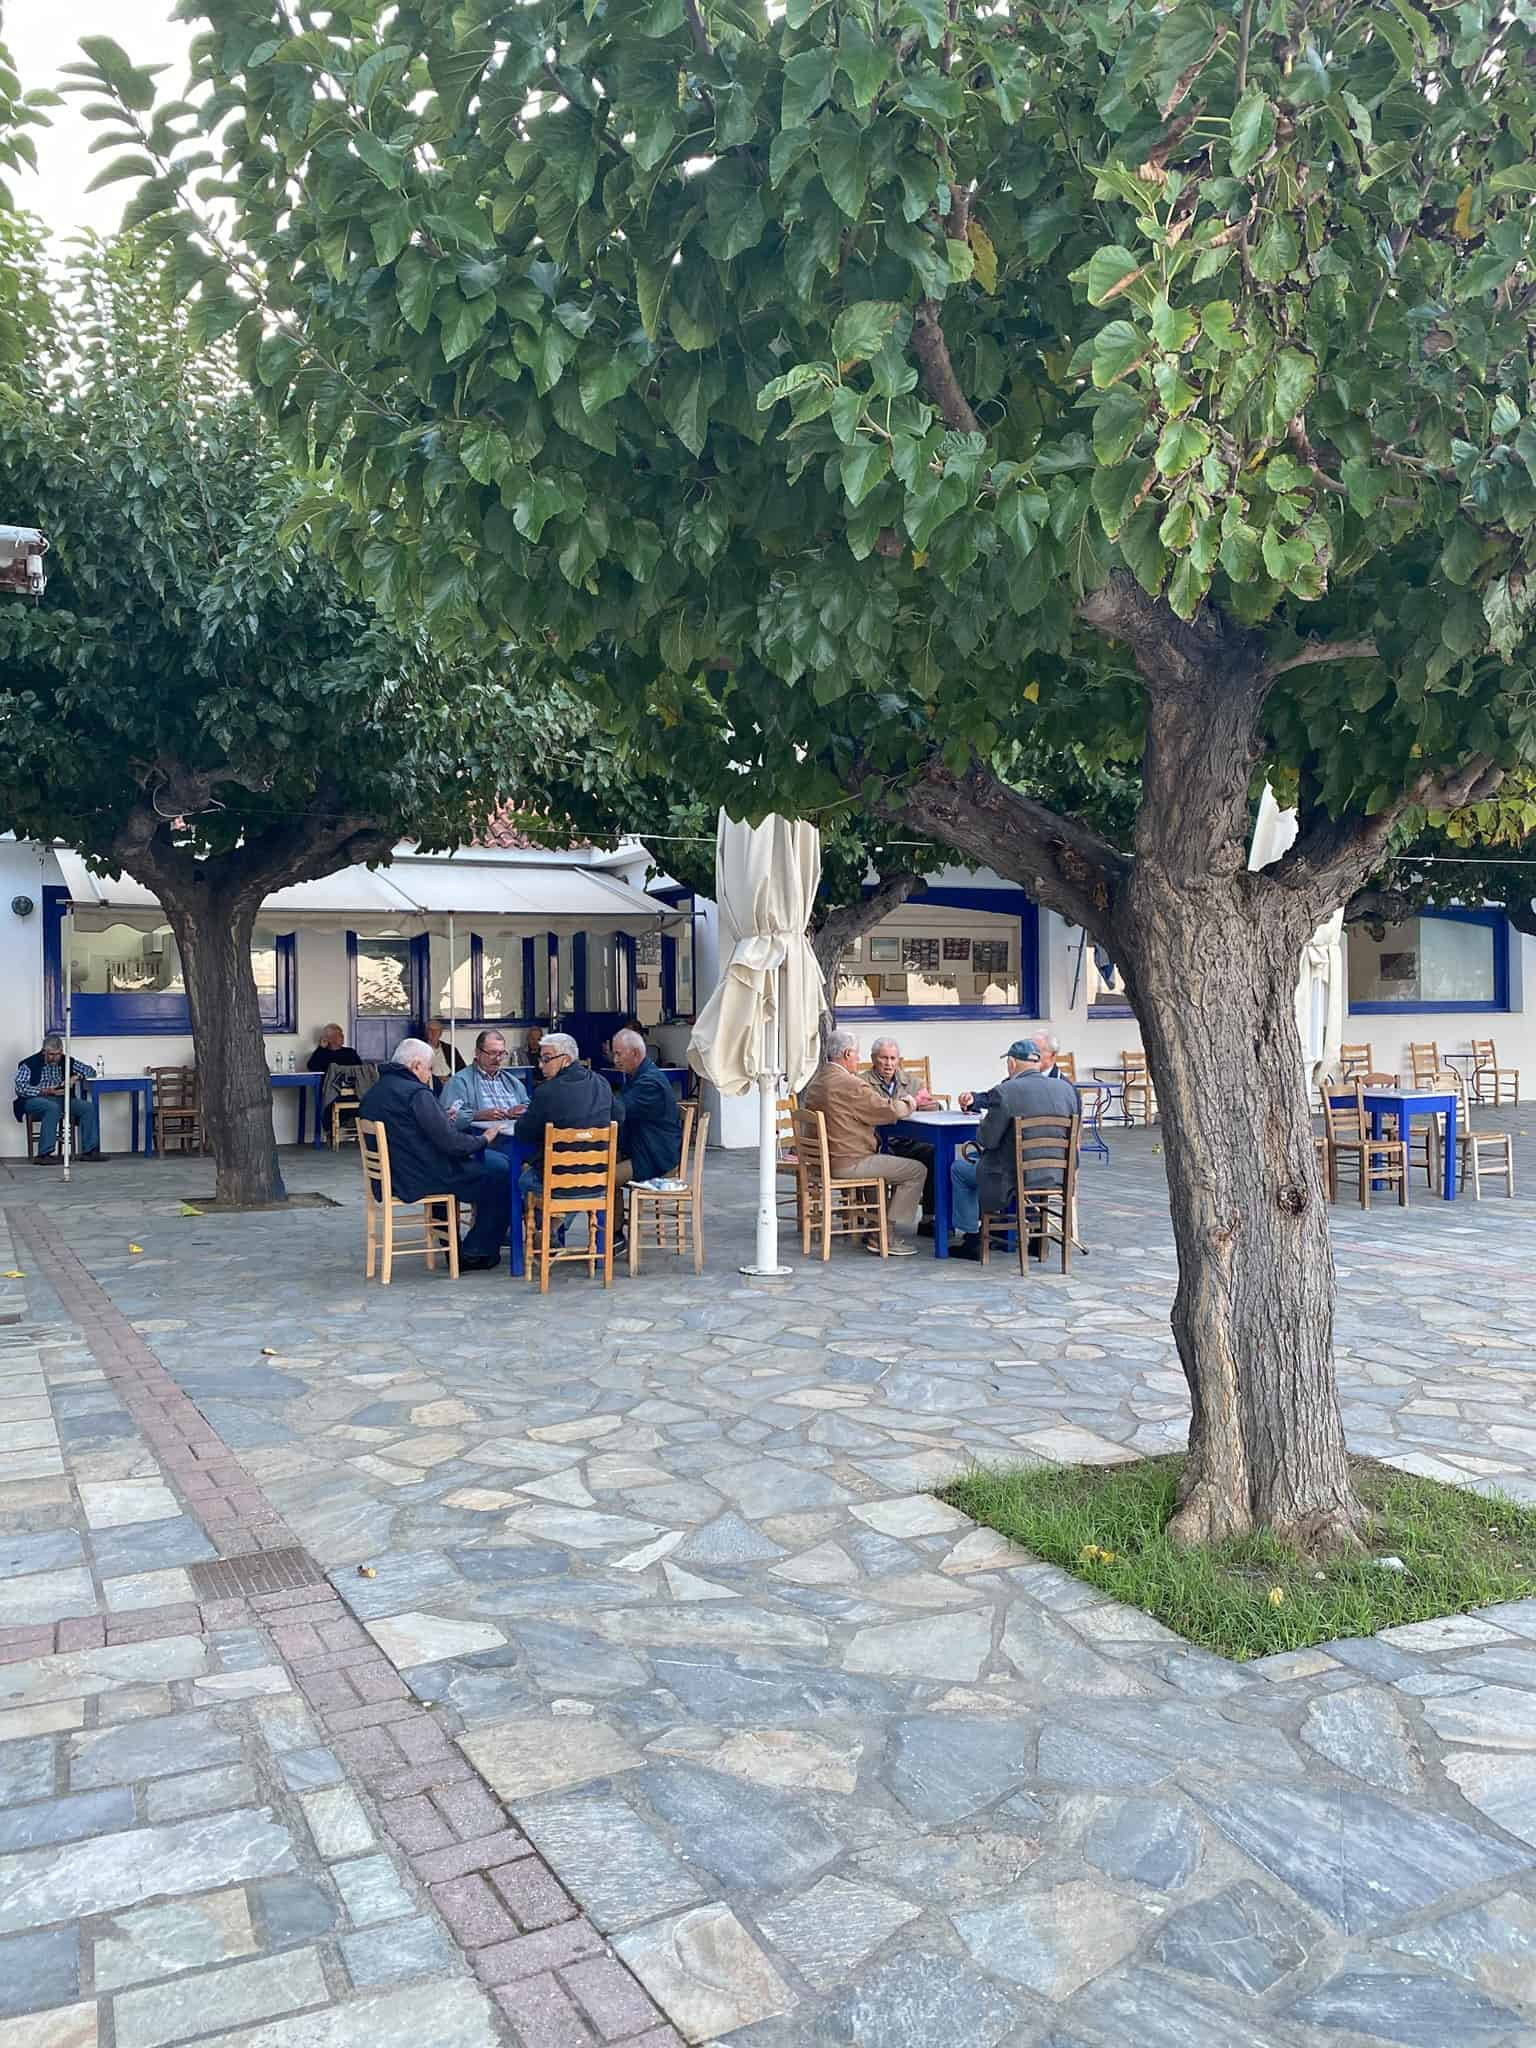 Greek coffee: a kafenion in Skopelos, Greece